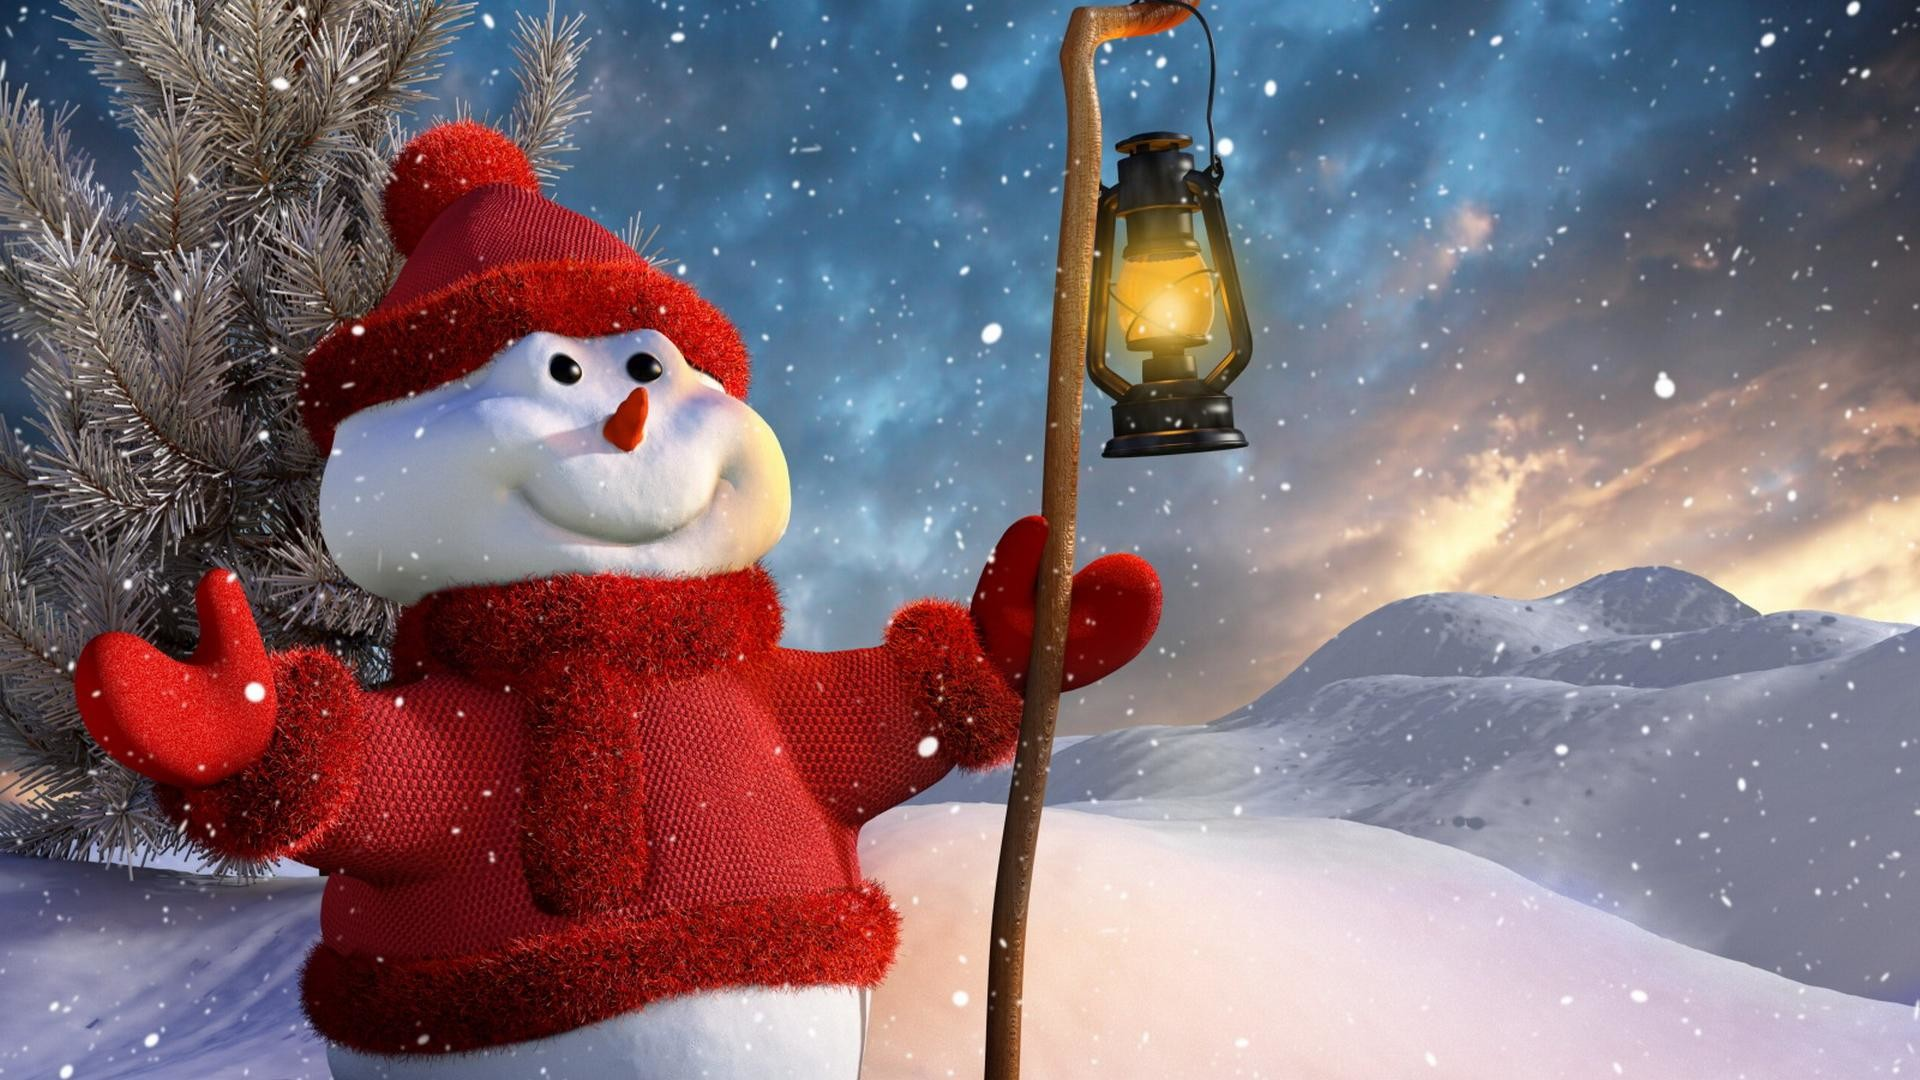 Christmas Hd Wallpaper.Christmas Hd Wallpapers 1080p 72 Images